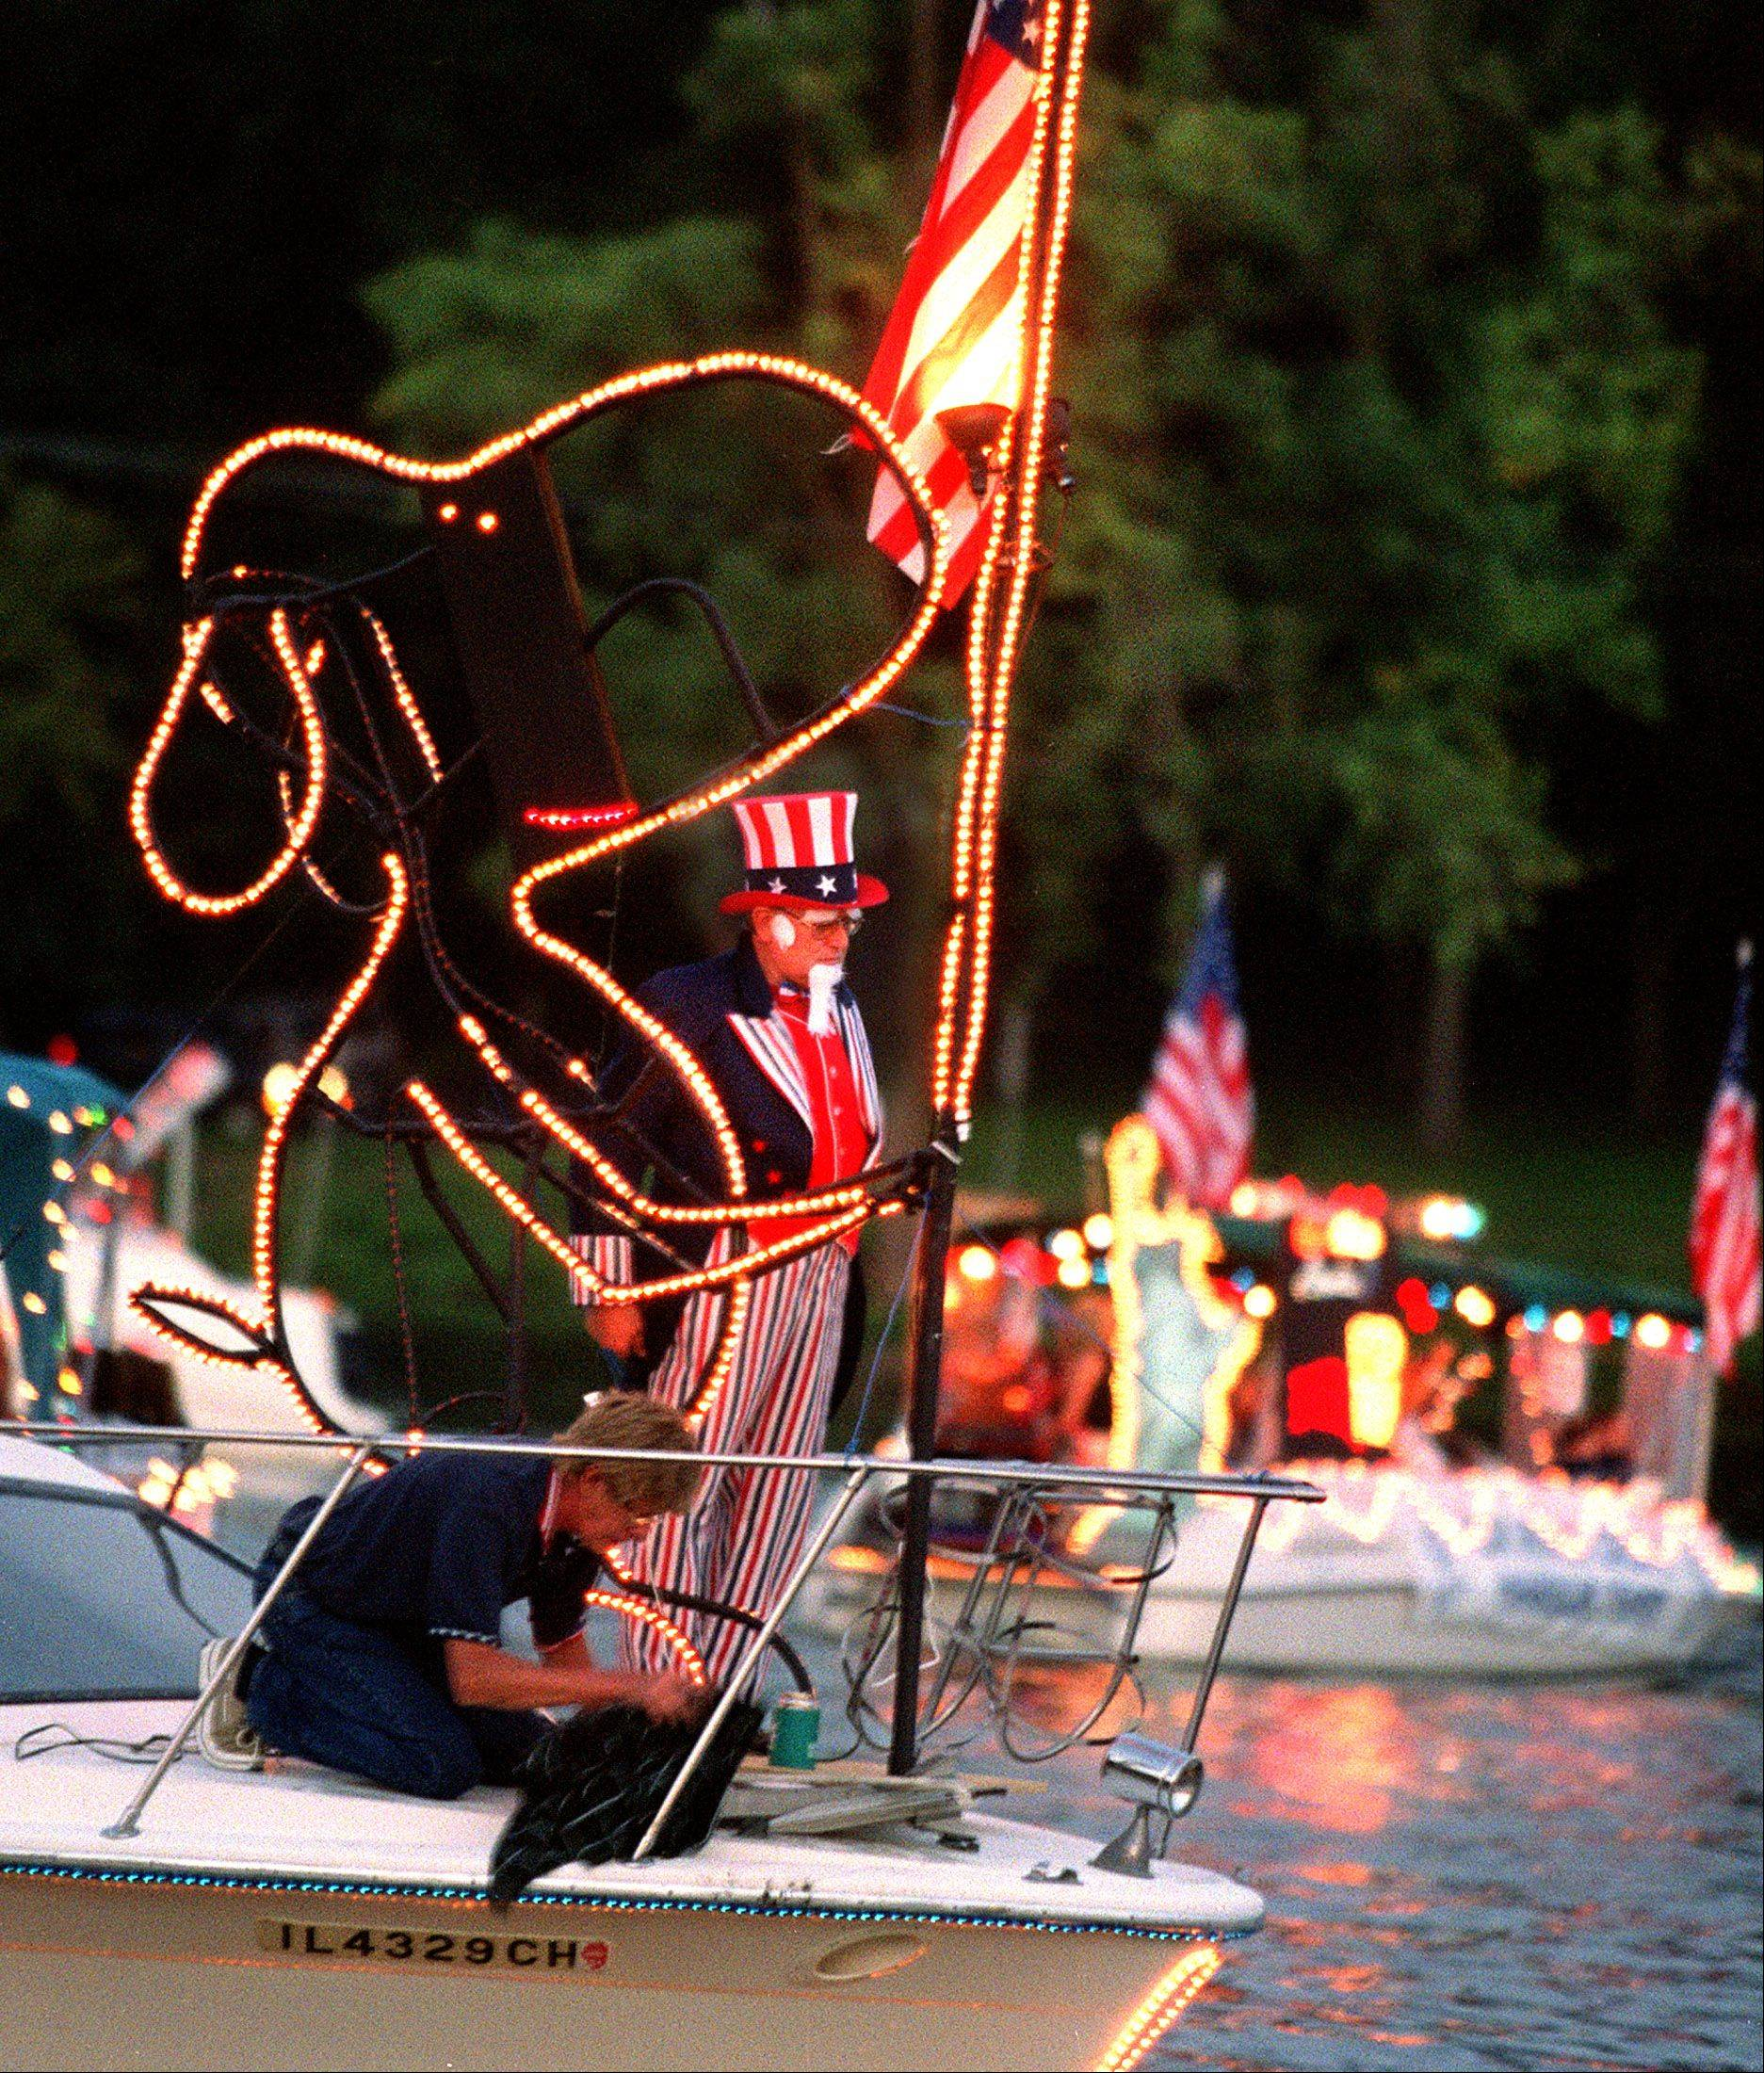 A boat sported Uncle Sam and Snoopy imagery at a previous year's Fox Lake Venetian Night.